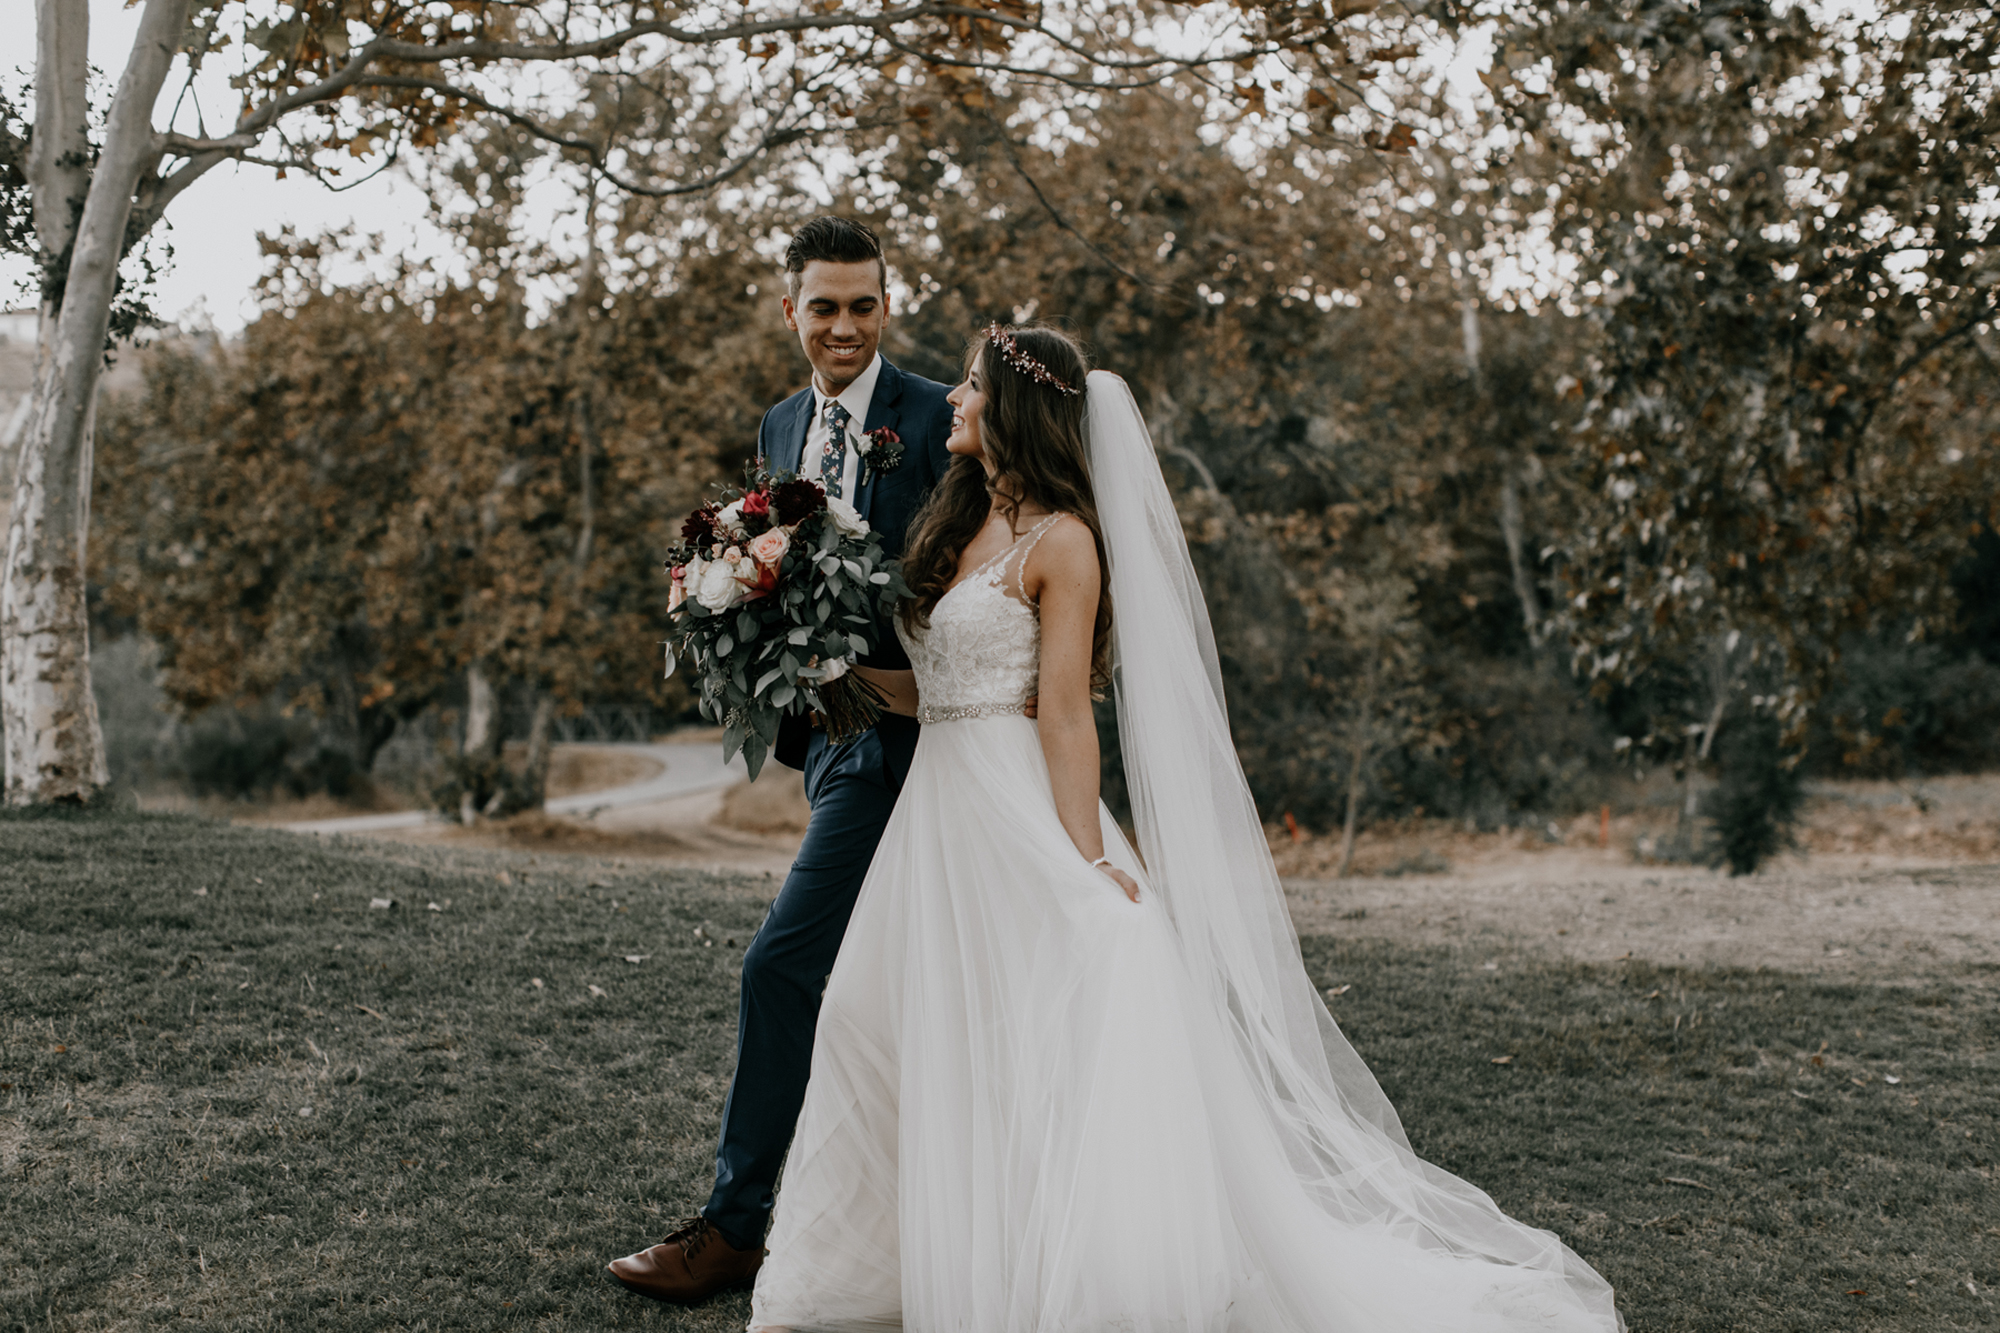 sandiegoweddingphotographer.jpg